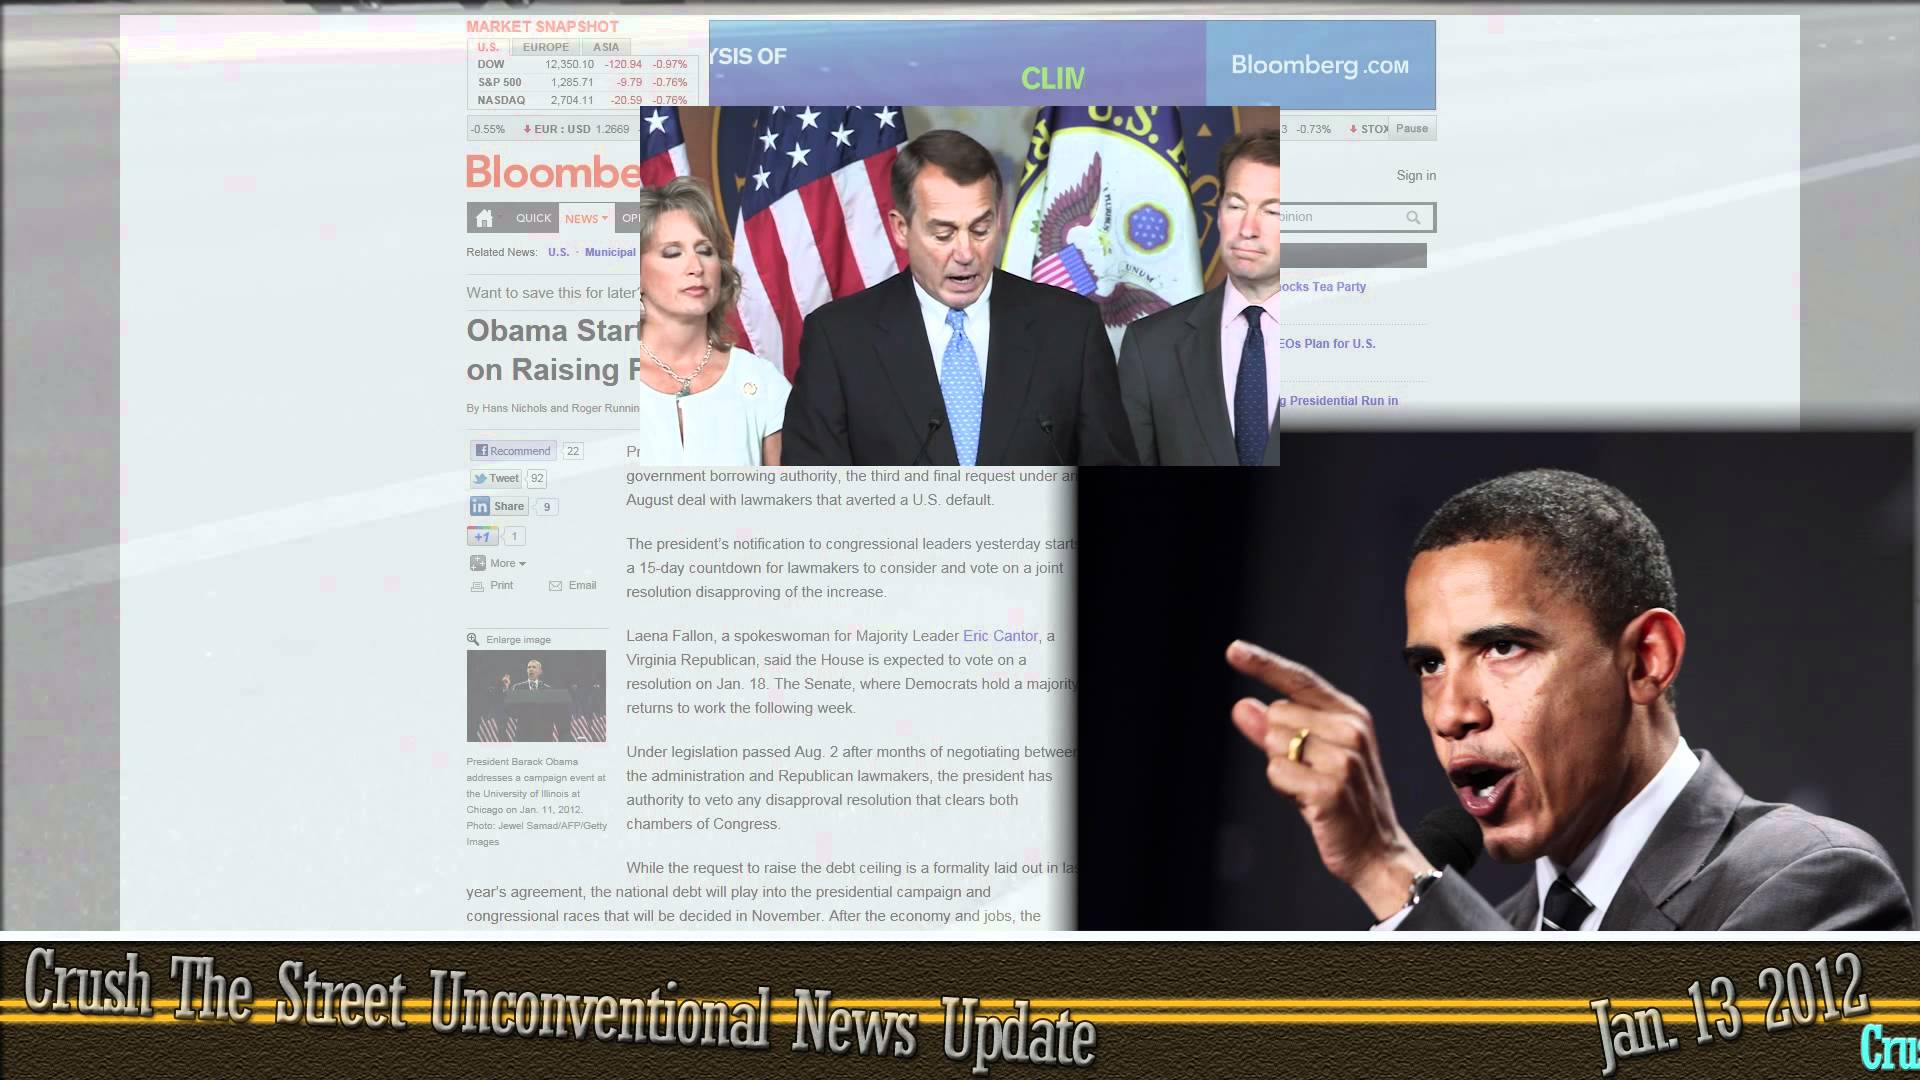 Unconventional News Update for January 13, 2012